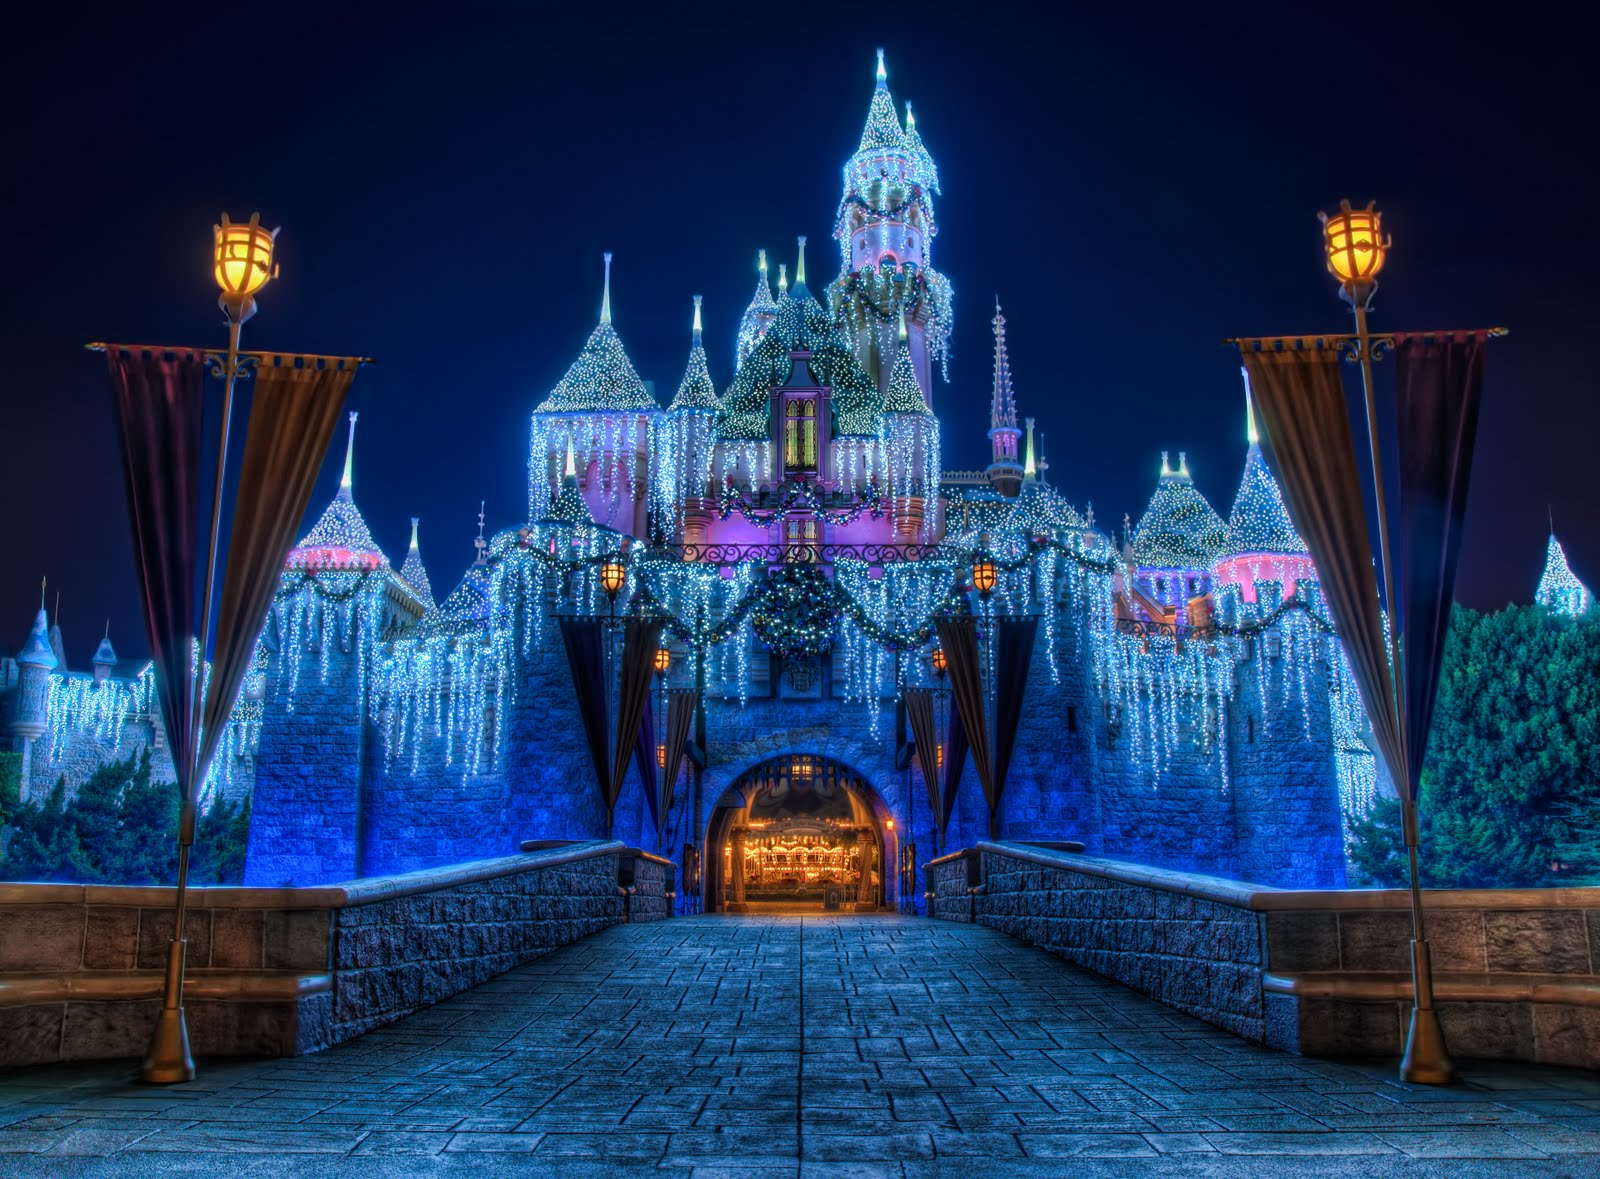 Wallpapers Disney Castle in Christmas Deskto Backgrounds Desktop 1600x1179